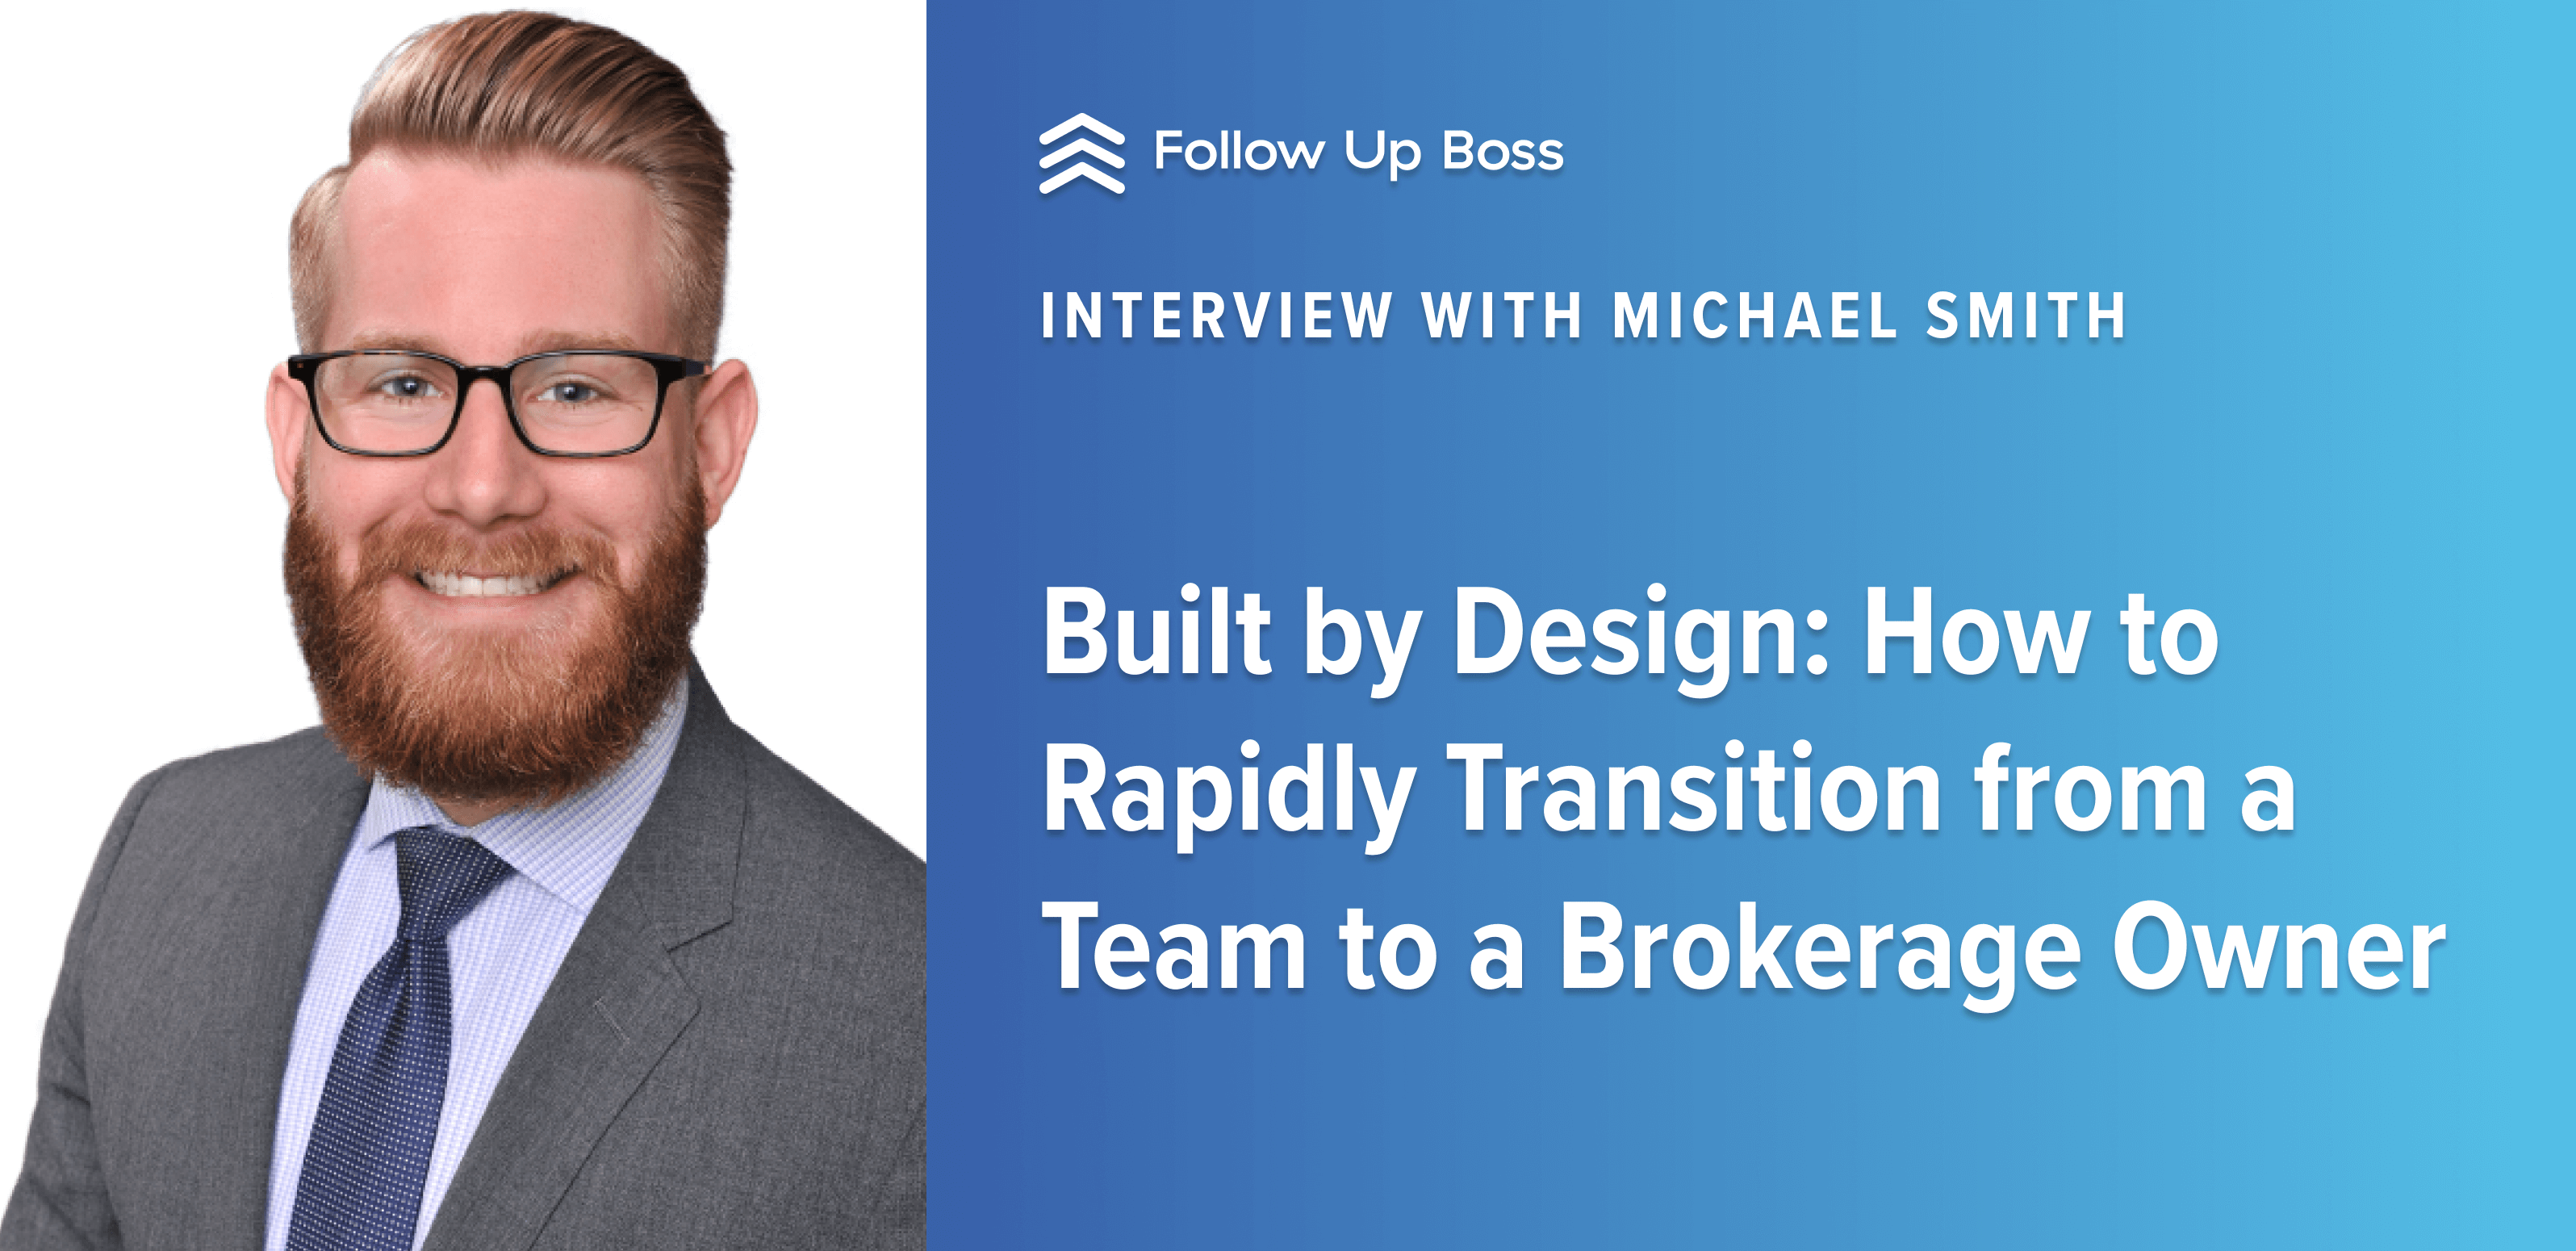 Built by Design: How to Rapidly Transition from a Team to a Brokerage Owner — Interview with Michael Smith